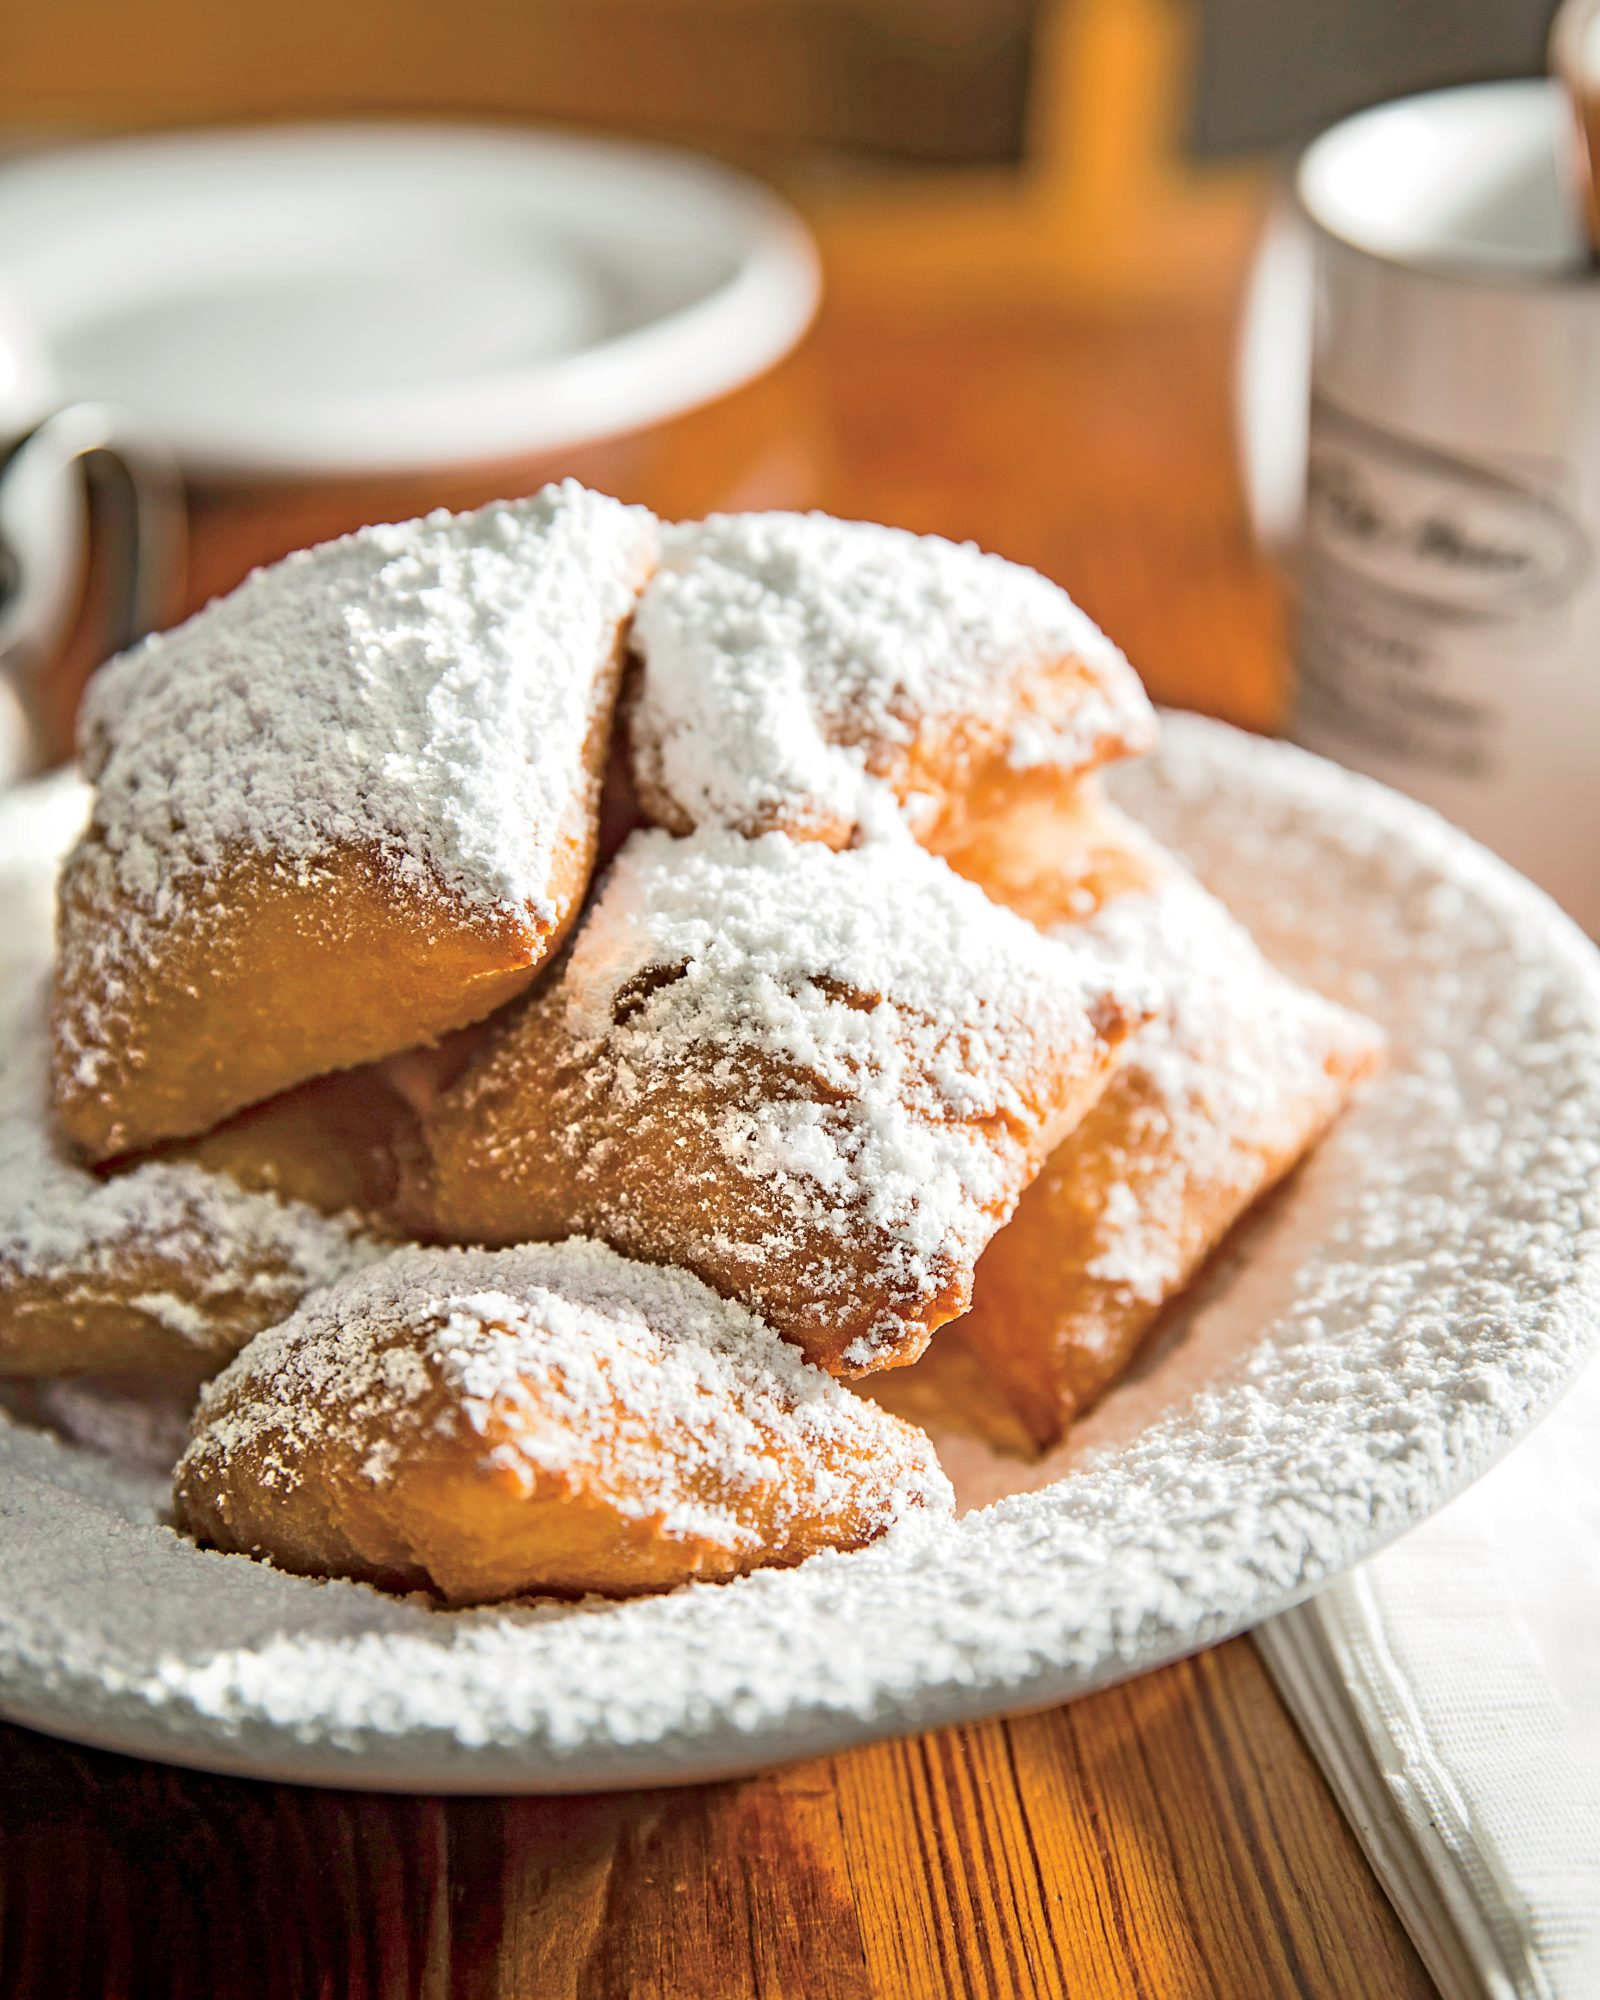 10. Sending out beignets at the wrong temperature.